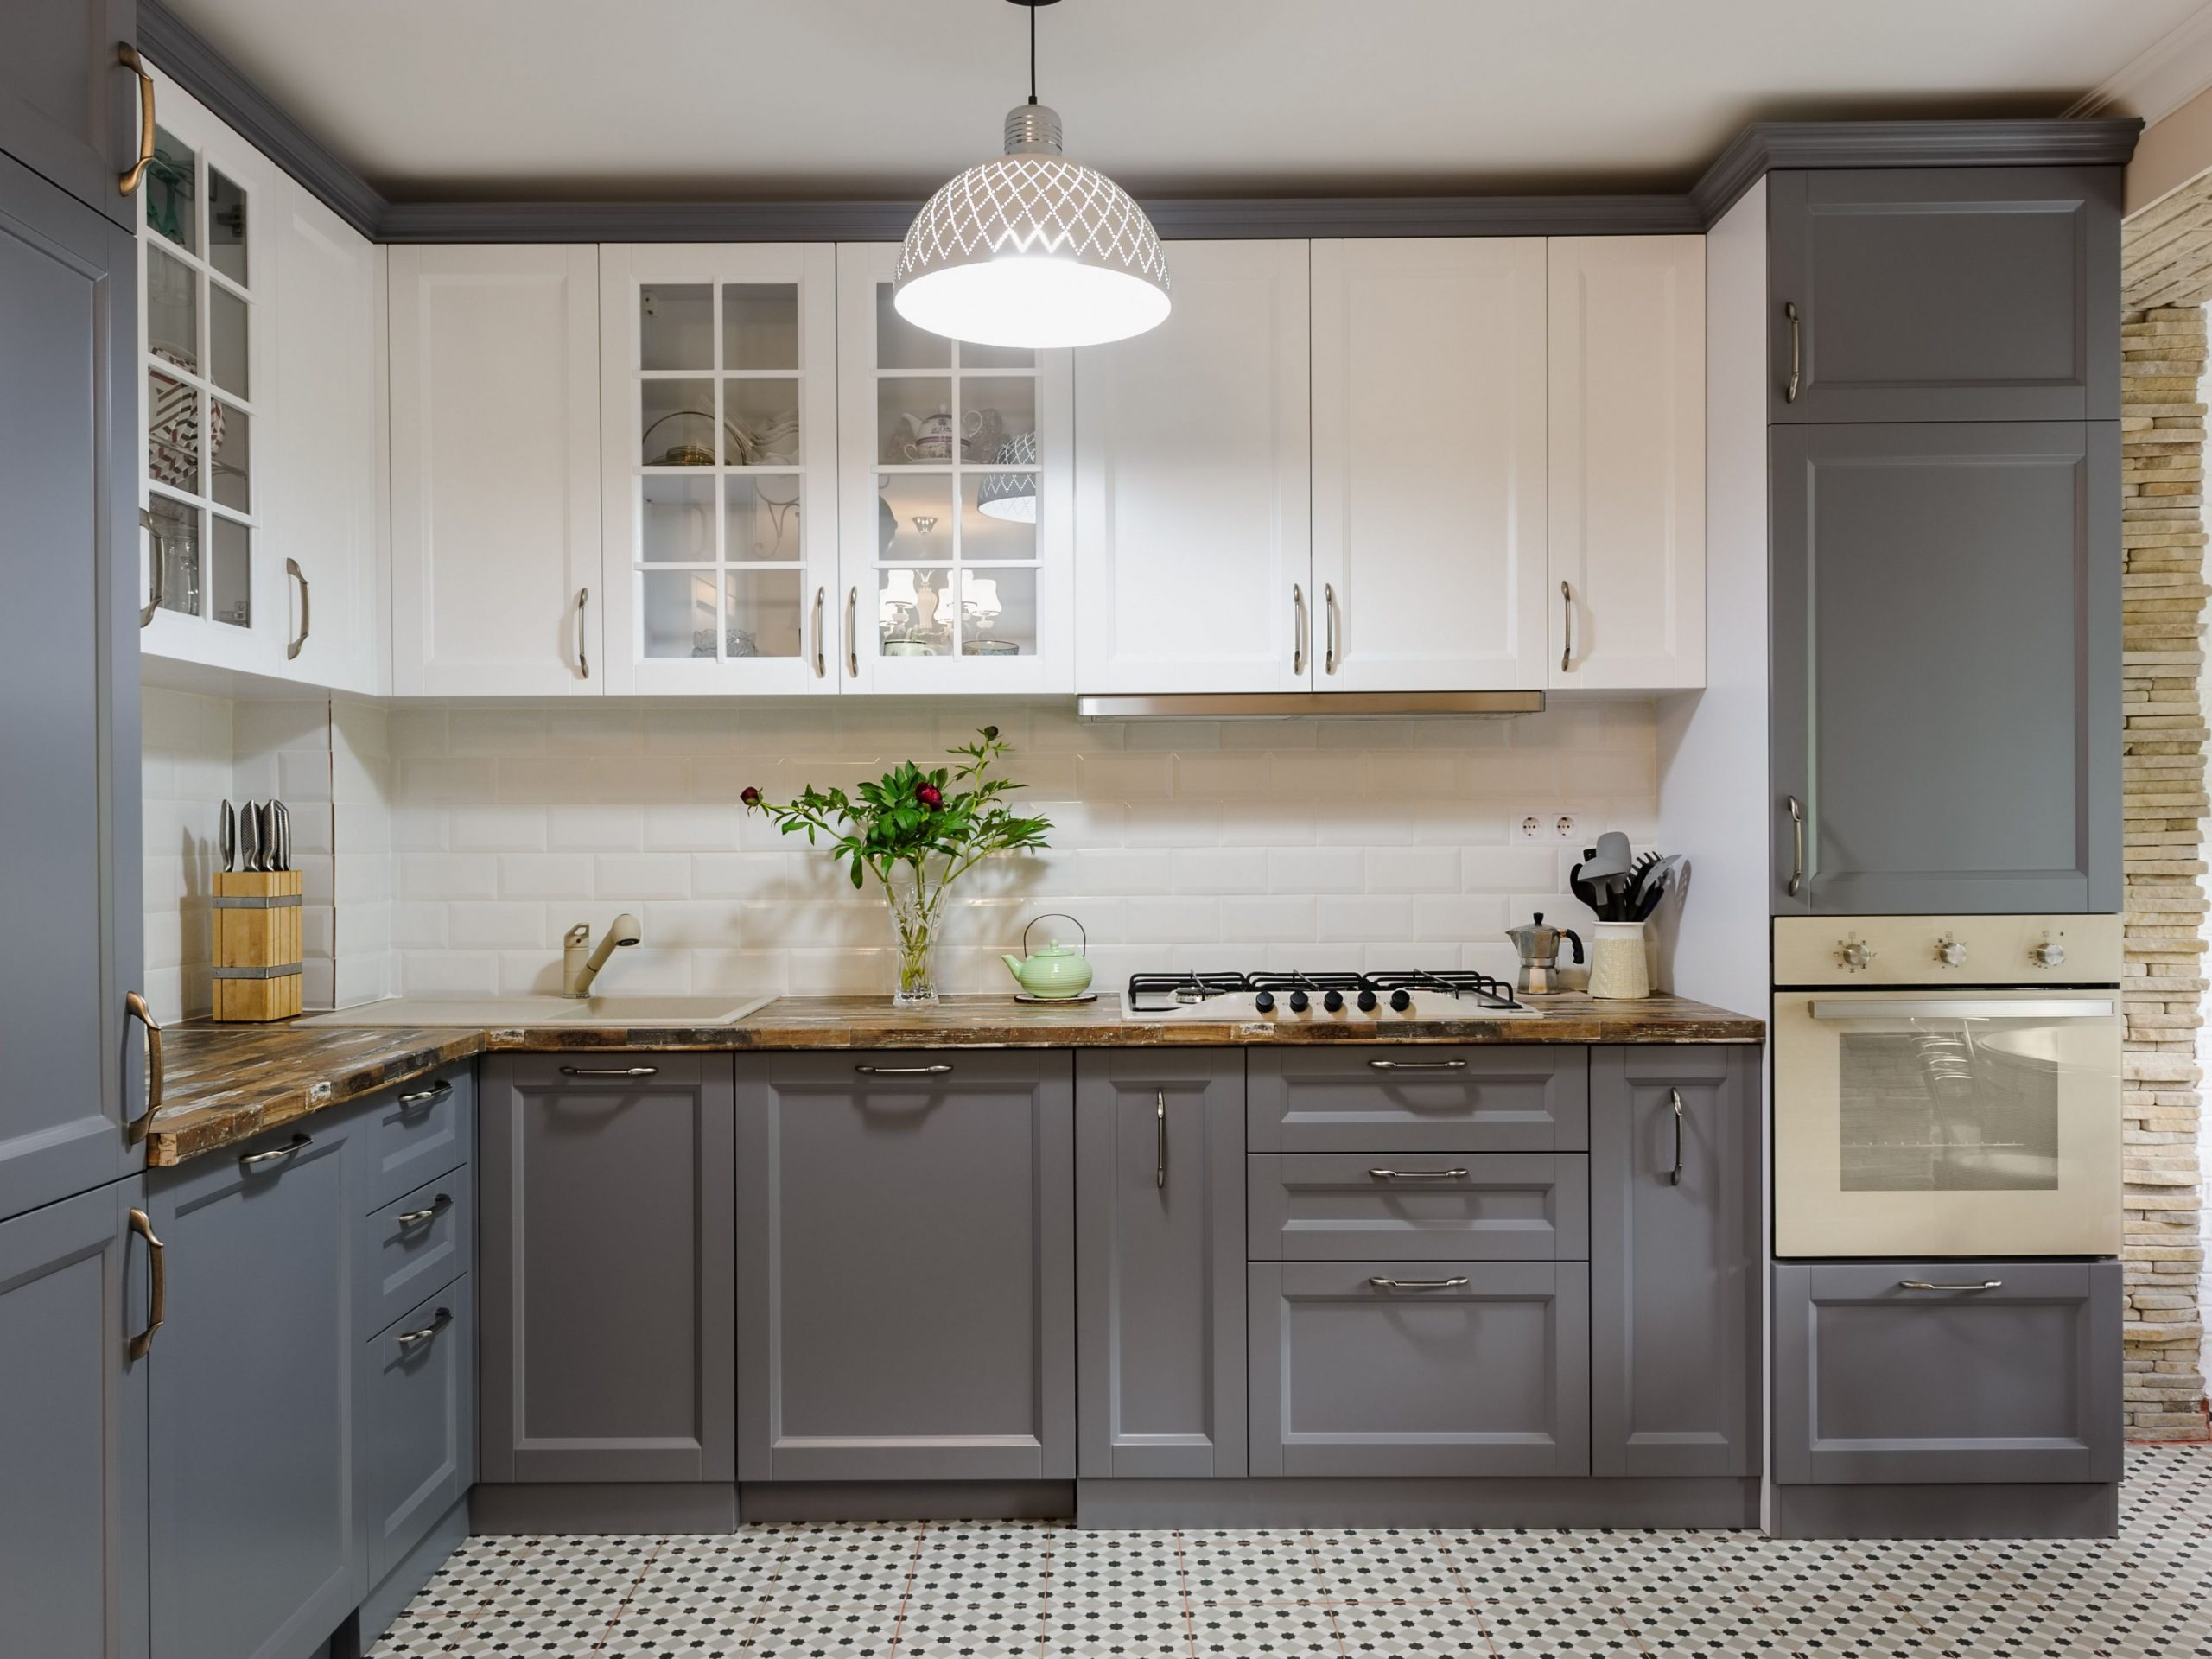 What Is a Base Cabinet? - Base Kitchen Cabinets Are Typically